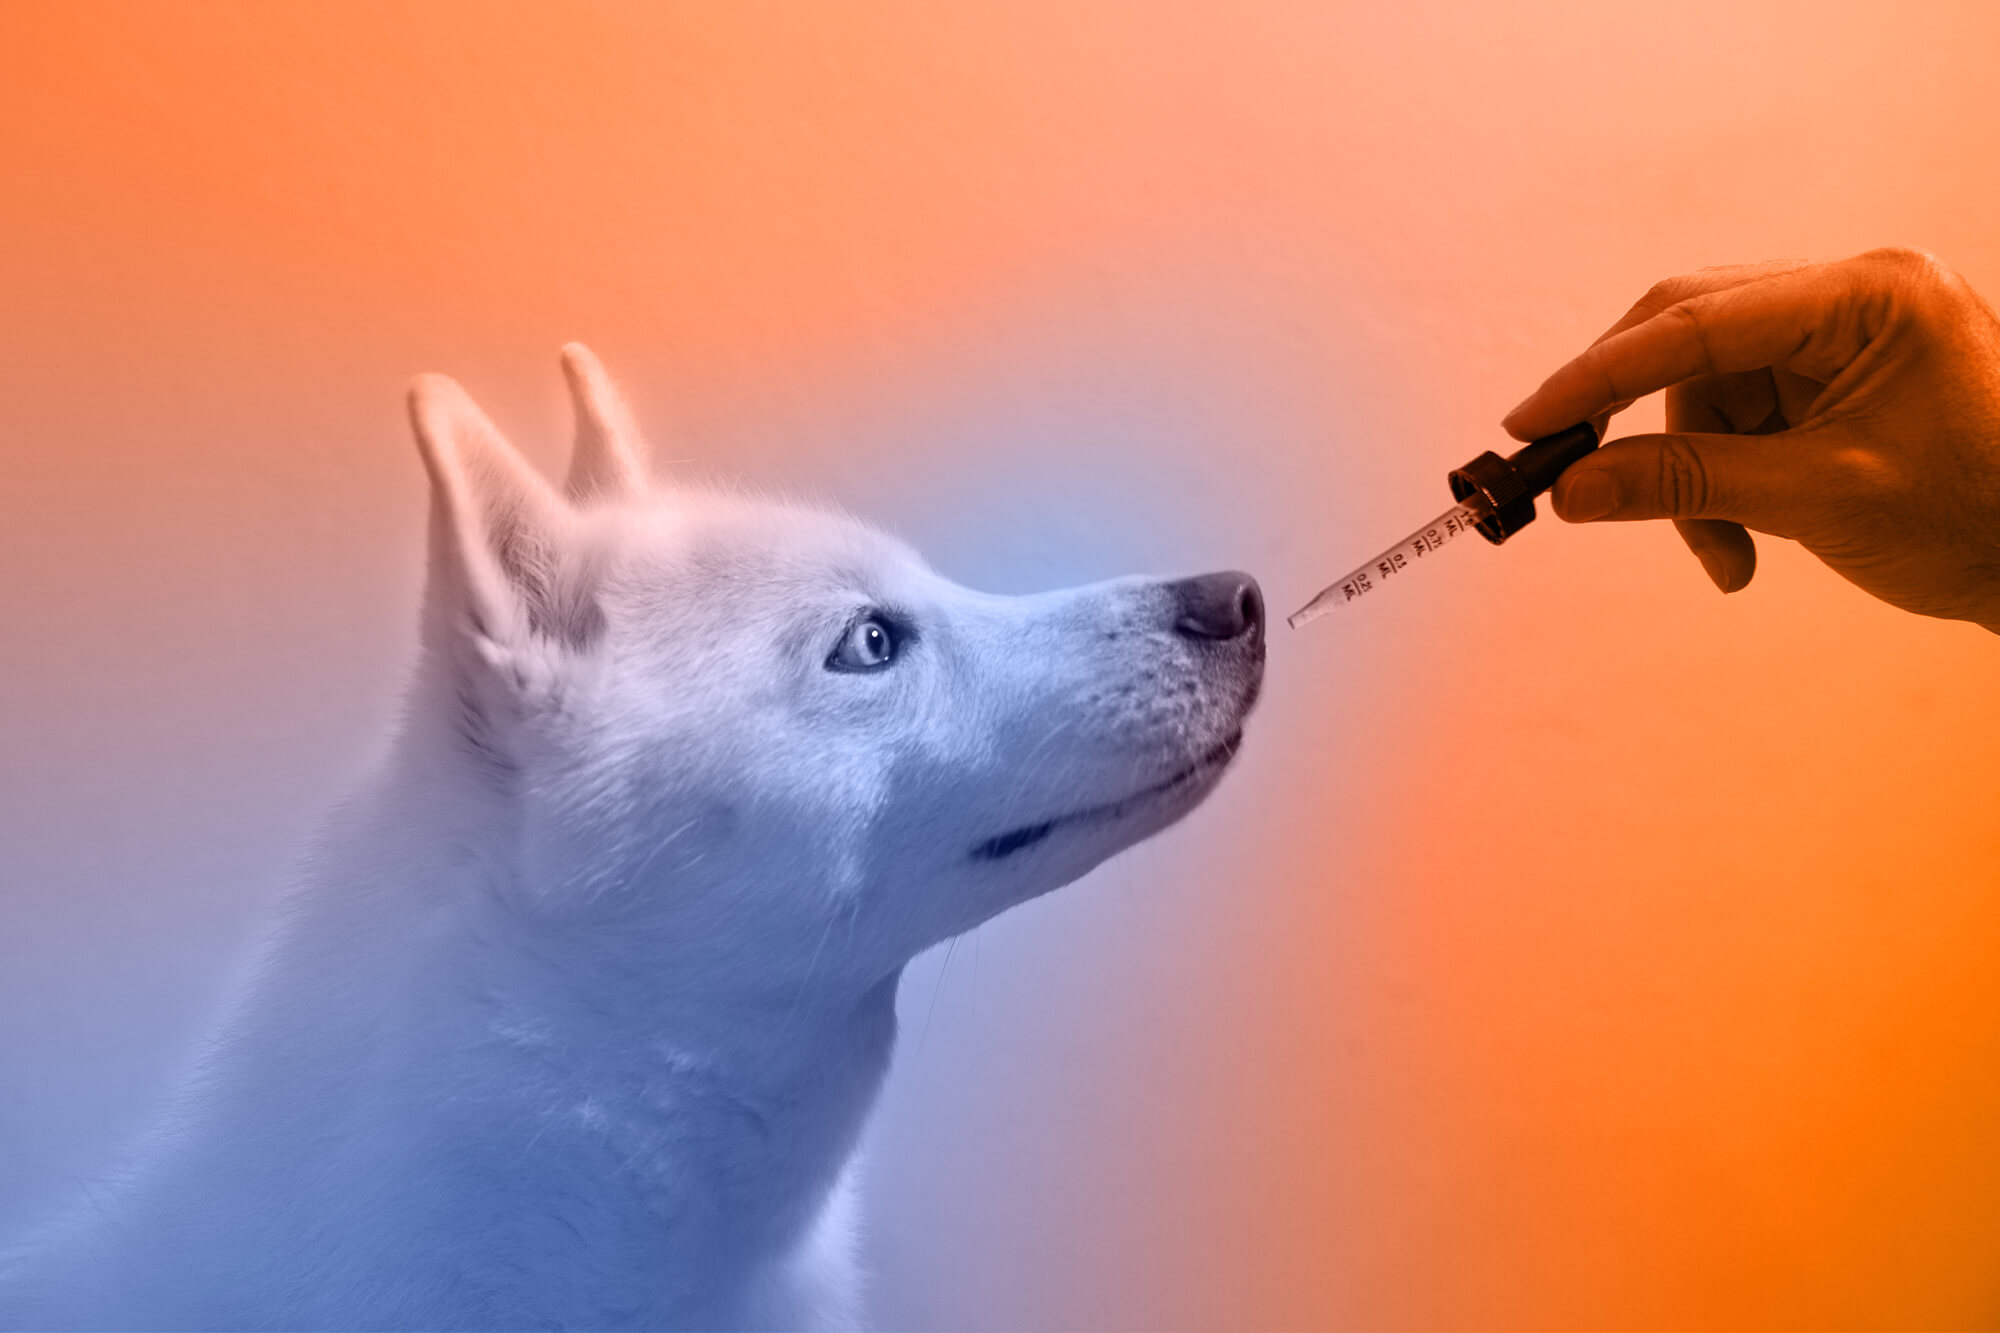 Best Dog Wellness Plans: 9 Things Your Dog Wants You to Know